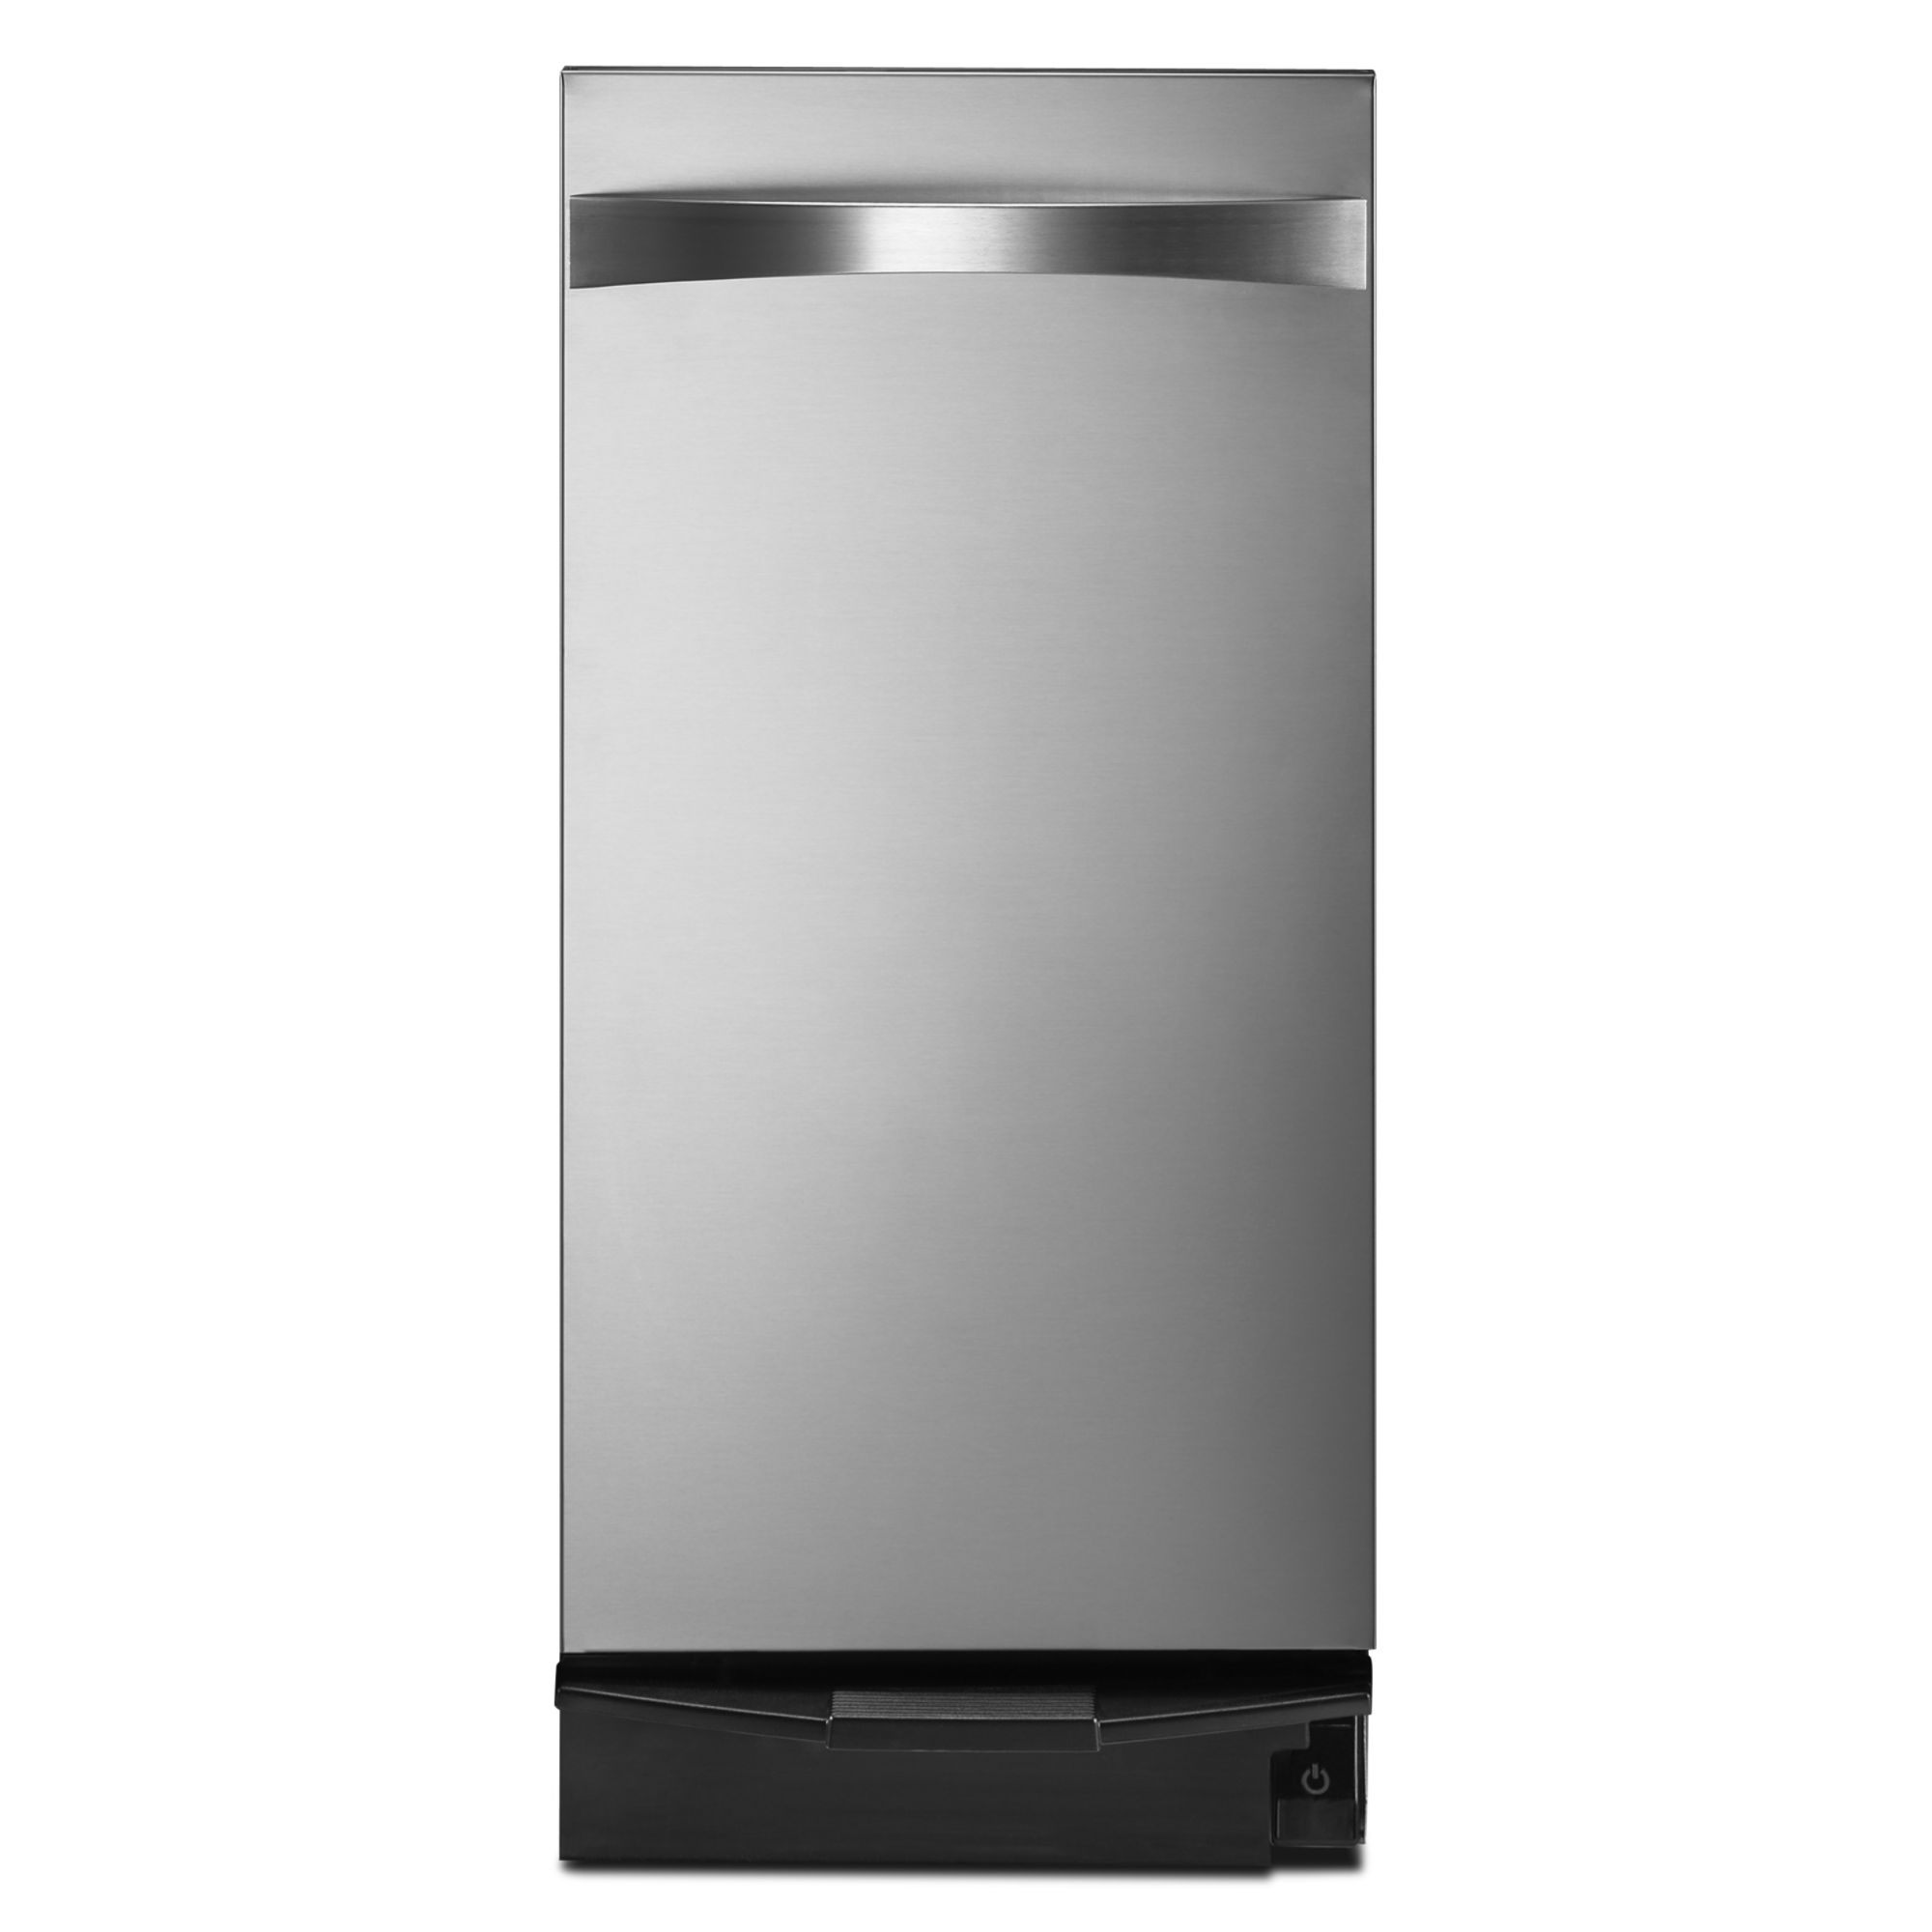 kitchen trash compactor best way to refinish cabinets kenmore elite 14733 1 4 cu ft stainless steel